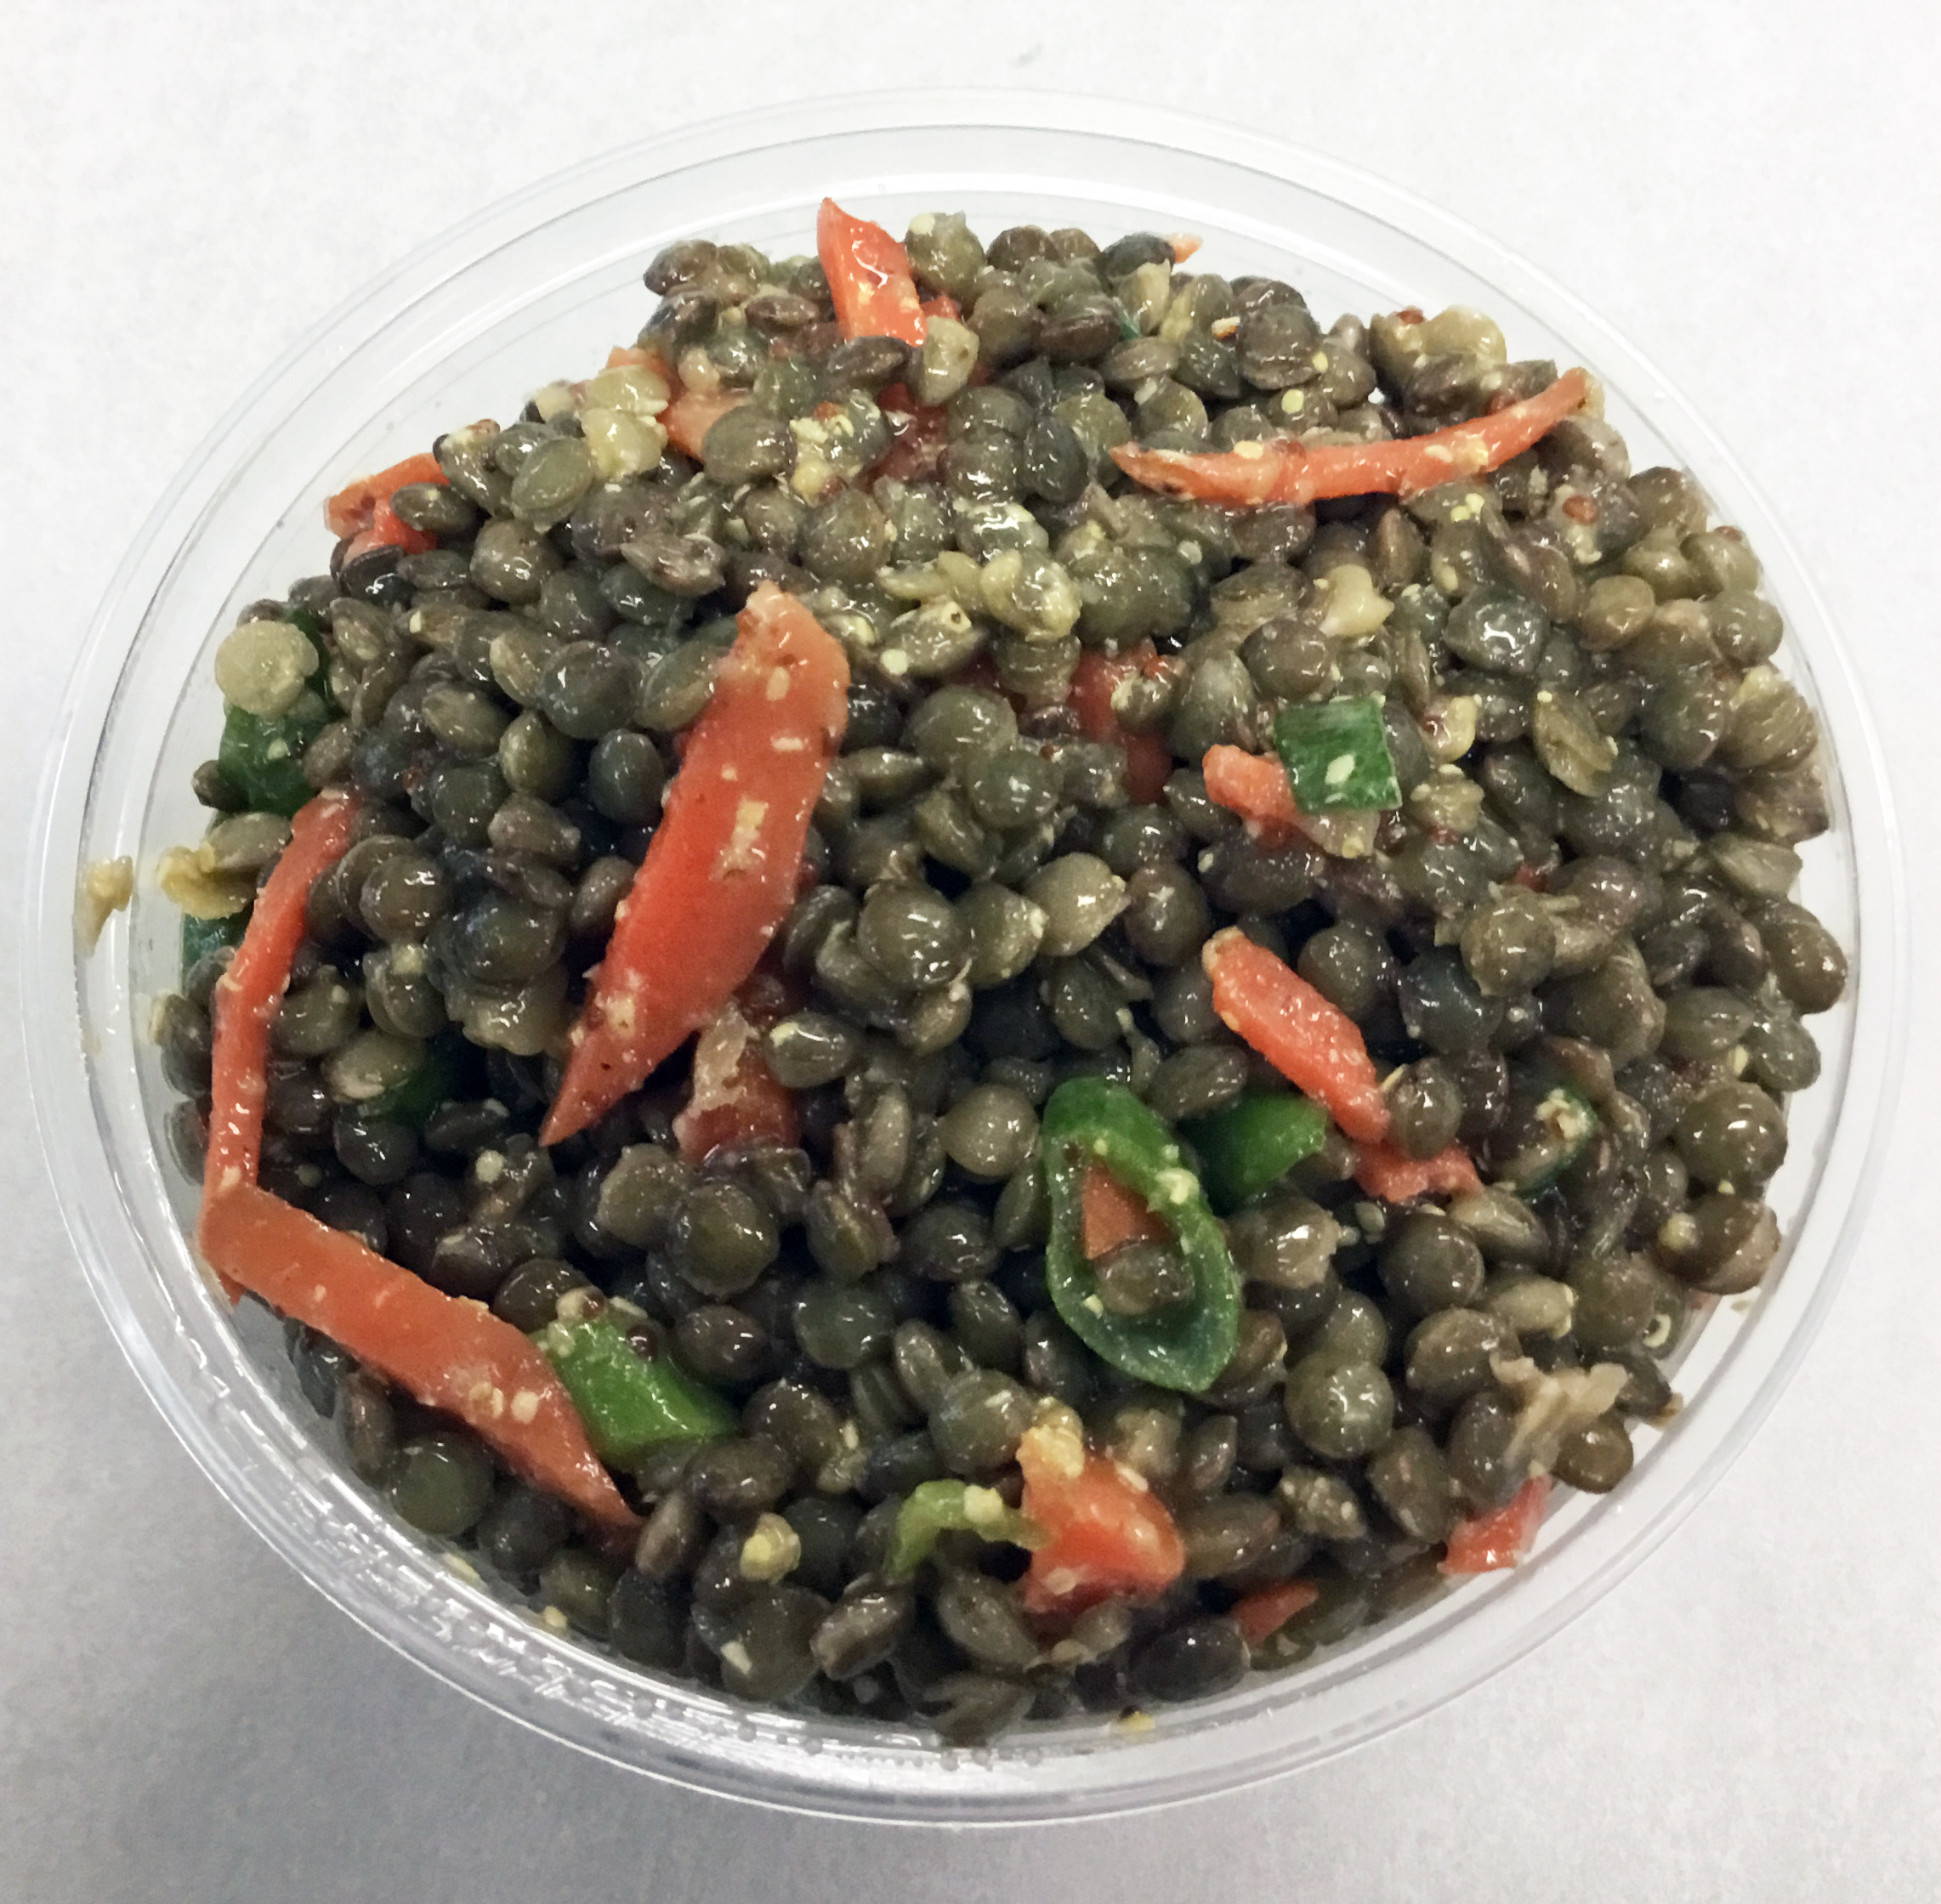 French lentils with carrot, scallions, mustard and parsley.